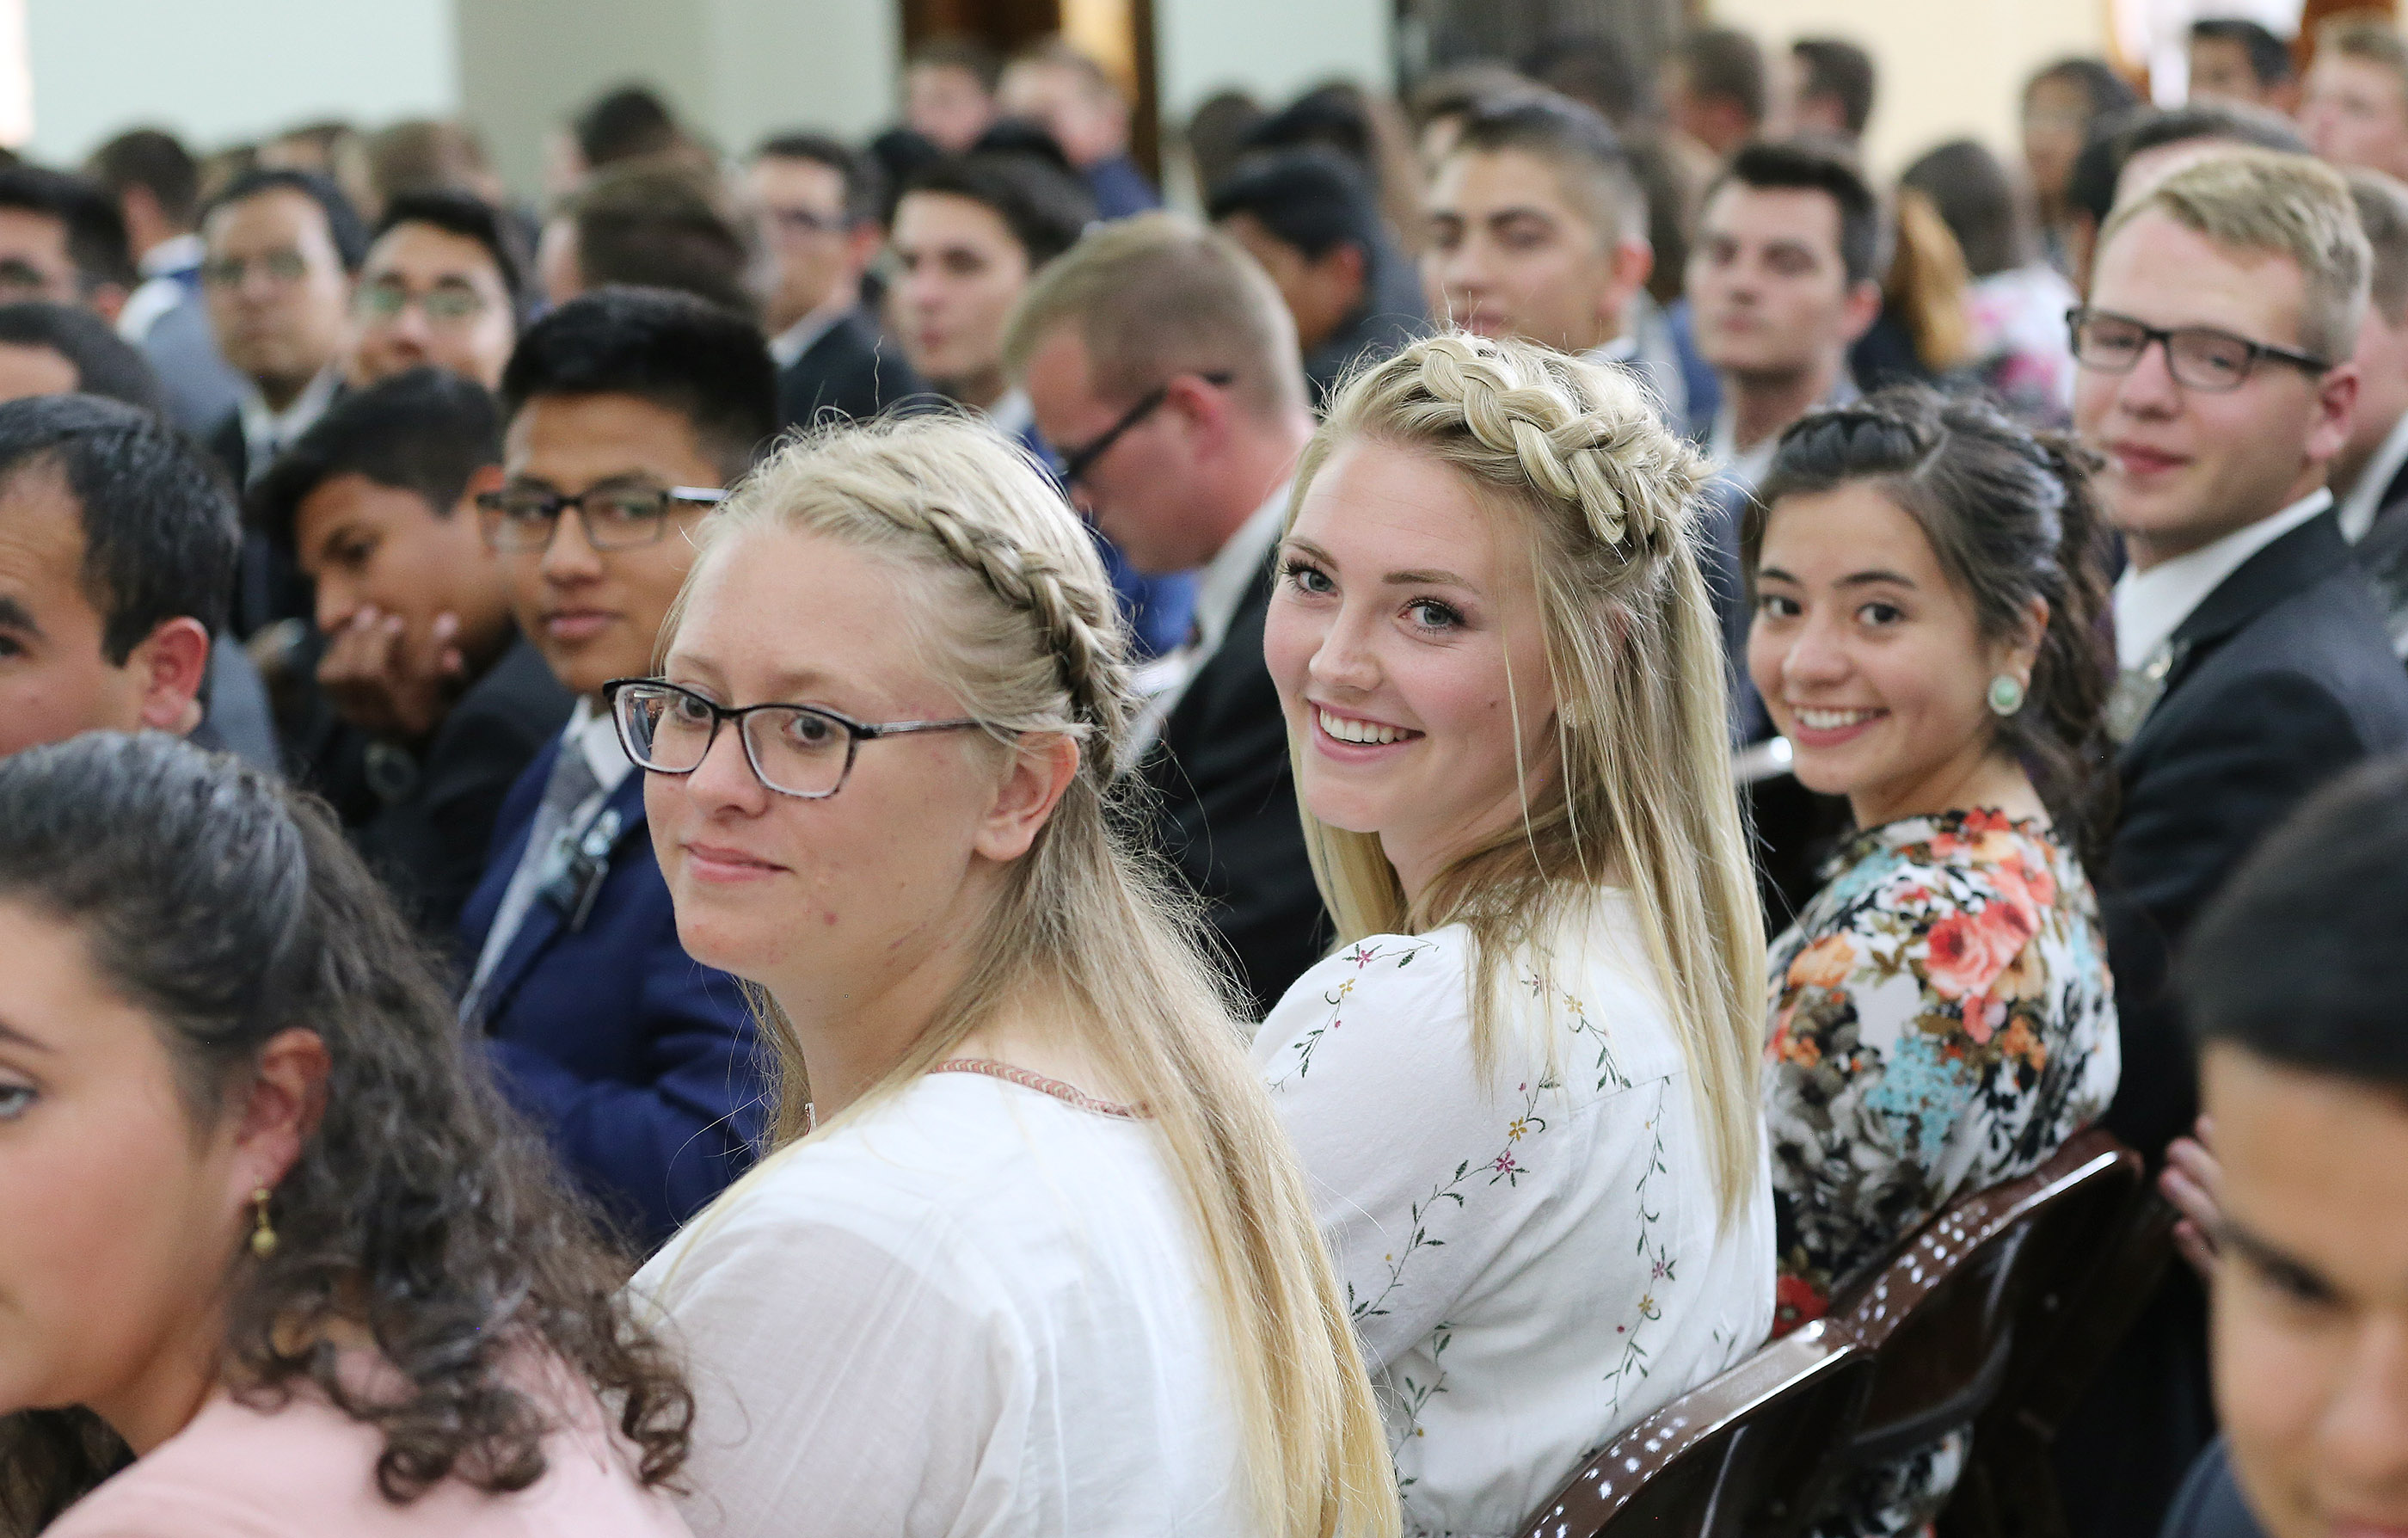 Missionaries watch President Russell M. Nelson of The Church of Jesus Christ of Latter-day Saints prior to a missionary meeting in Montevideo, Uraguay on Thursday, Oct. 25, 2018. The First Presidency of the Church of Jesus Christ of Latter-day Saints announced Friday, Feb. 15, that missionaries worldwide are now authorized to communicate with their families each week on preparation day by text messages, online messaging, phone calls and video chats, in addition to letters and emails.